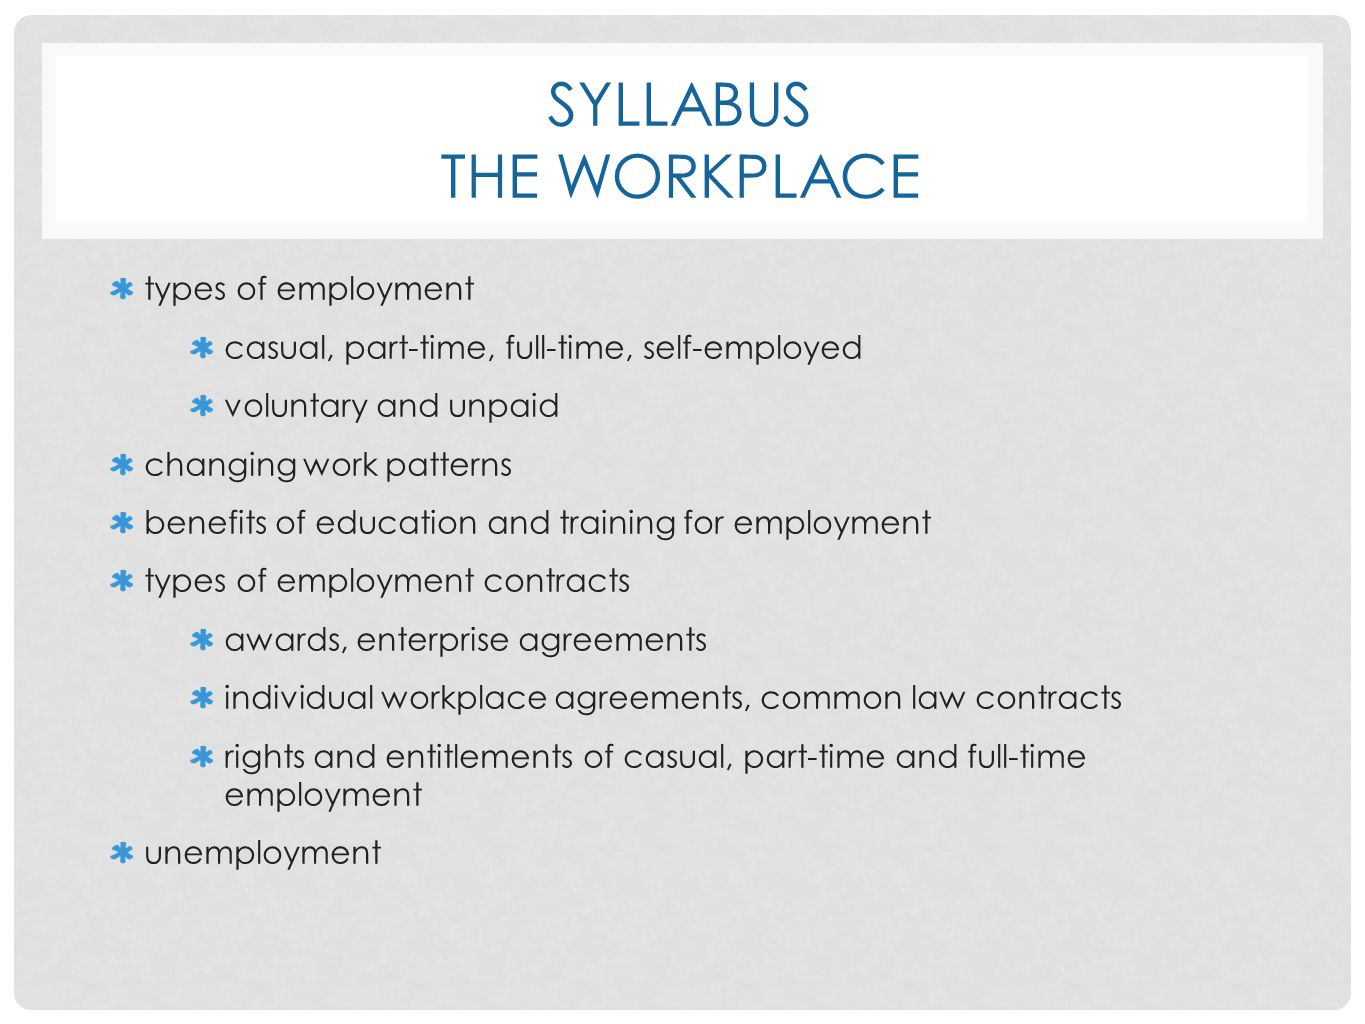 Syllabus The Workplace